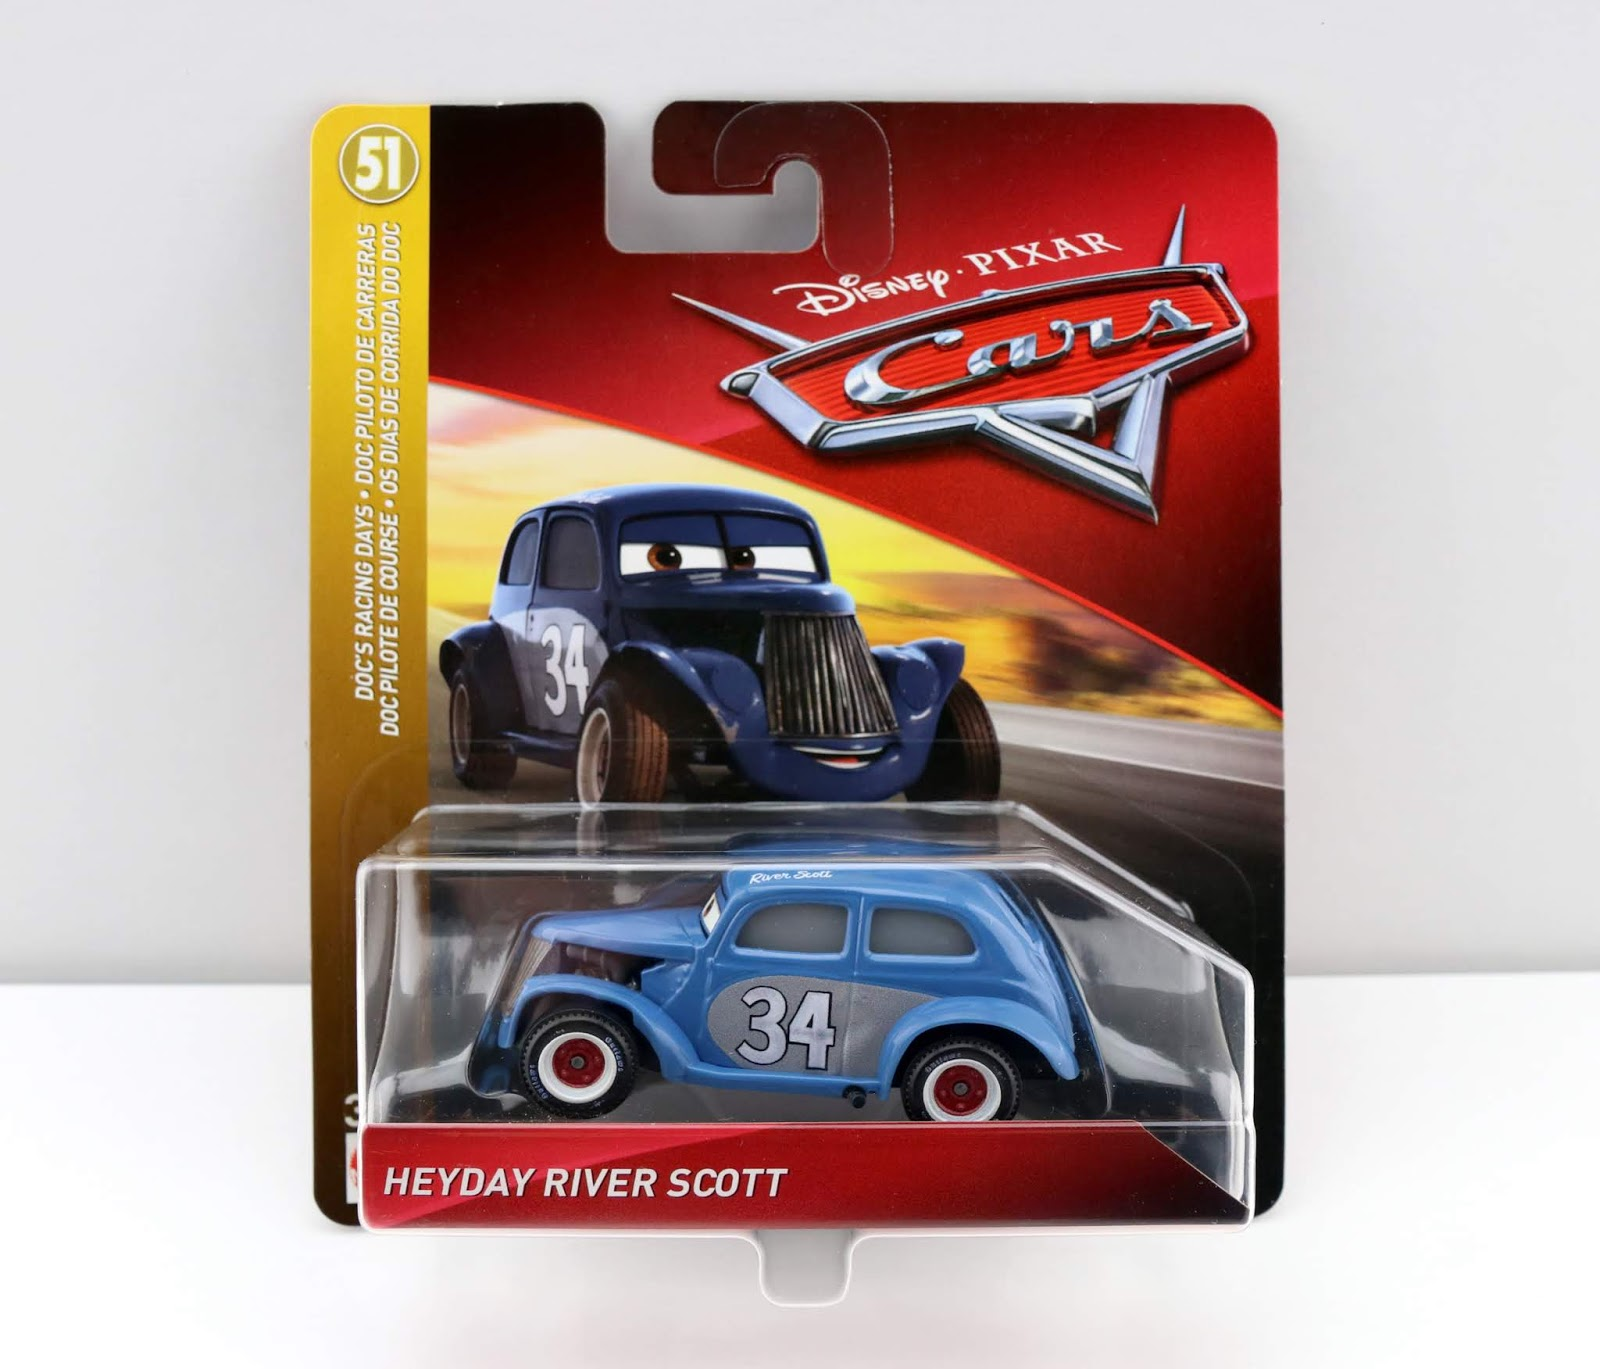 Cars 3 Heyday River Scott diecast